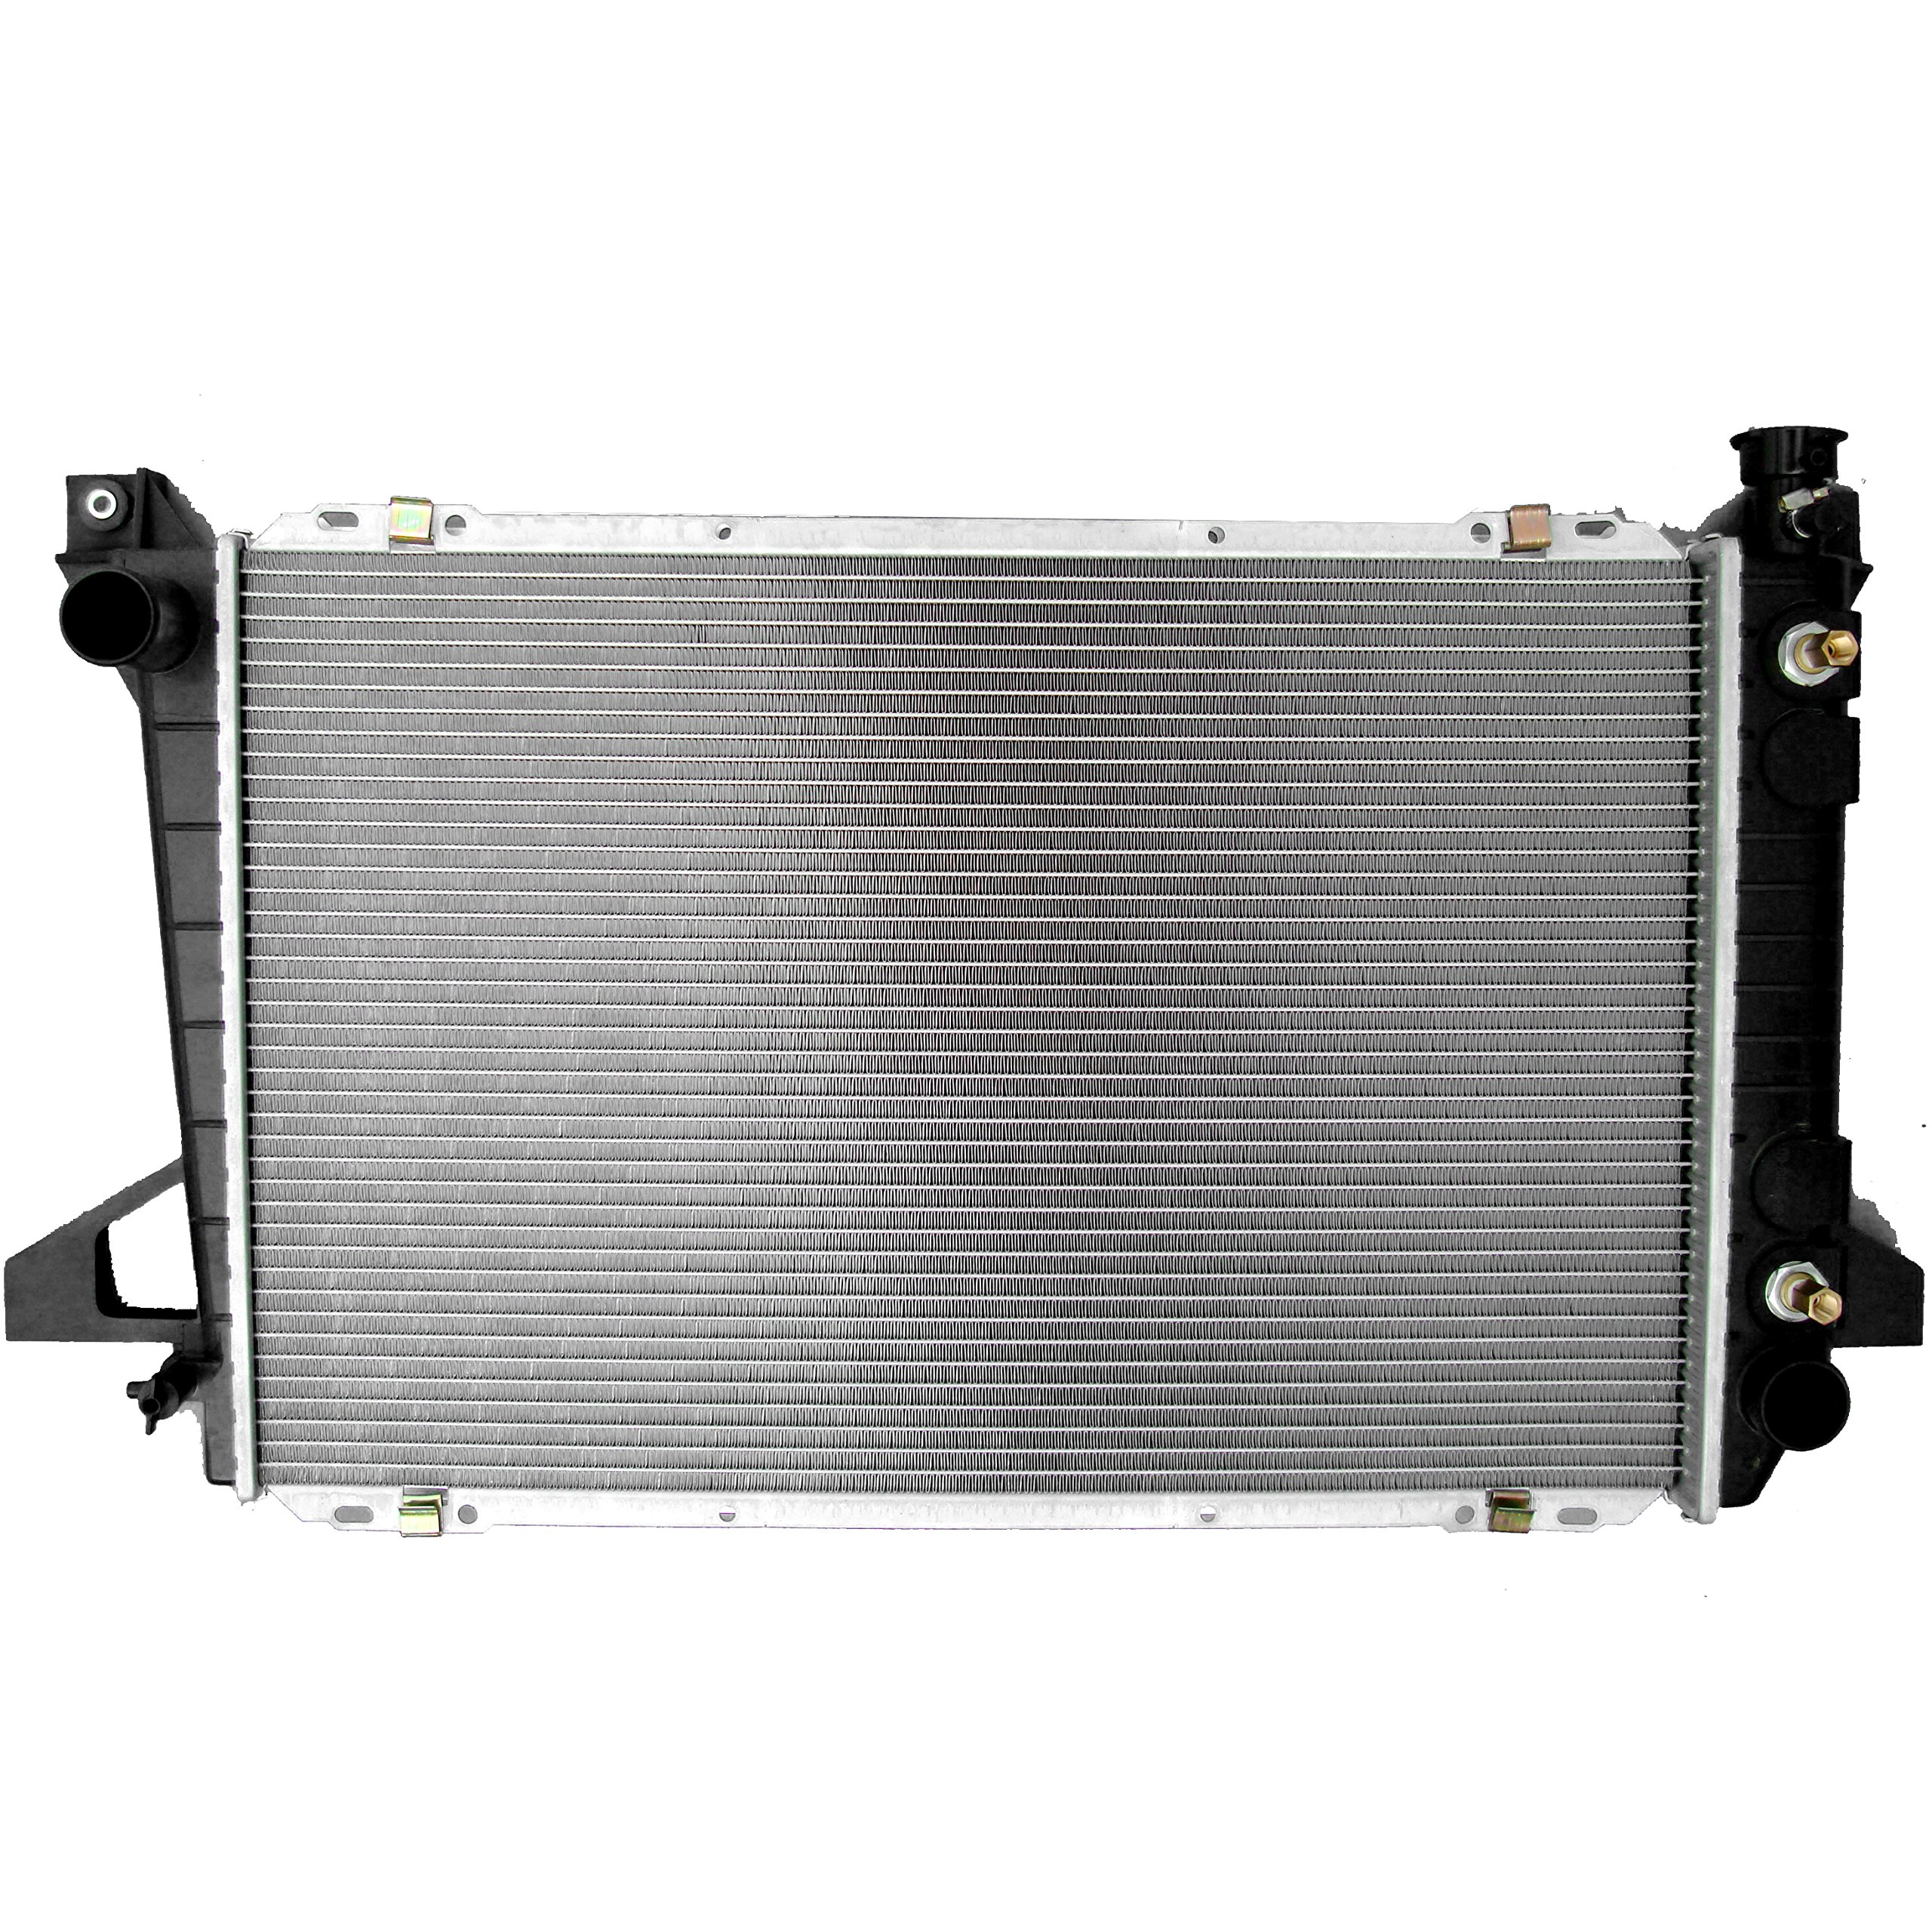 SCITOO Radiator 1452 fit 1985-1997 Ford F-150 1985-1996 Ford F-250 1985-1992 Ford Bronco 4.9L